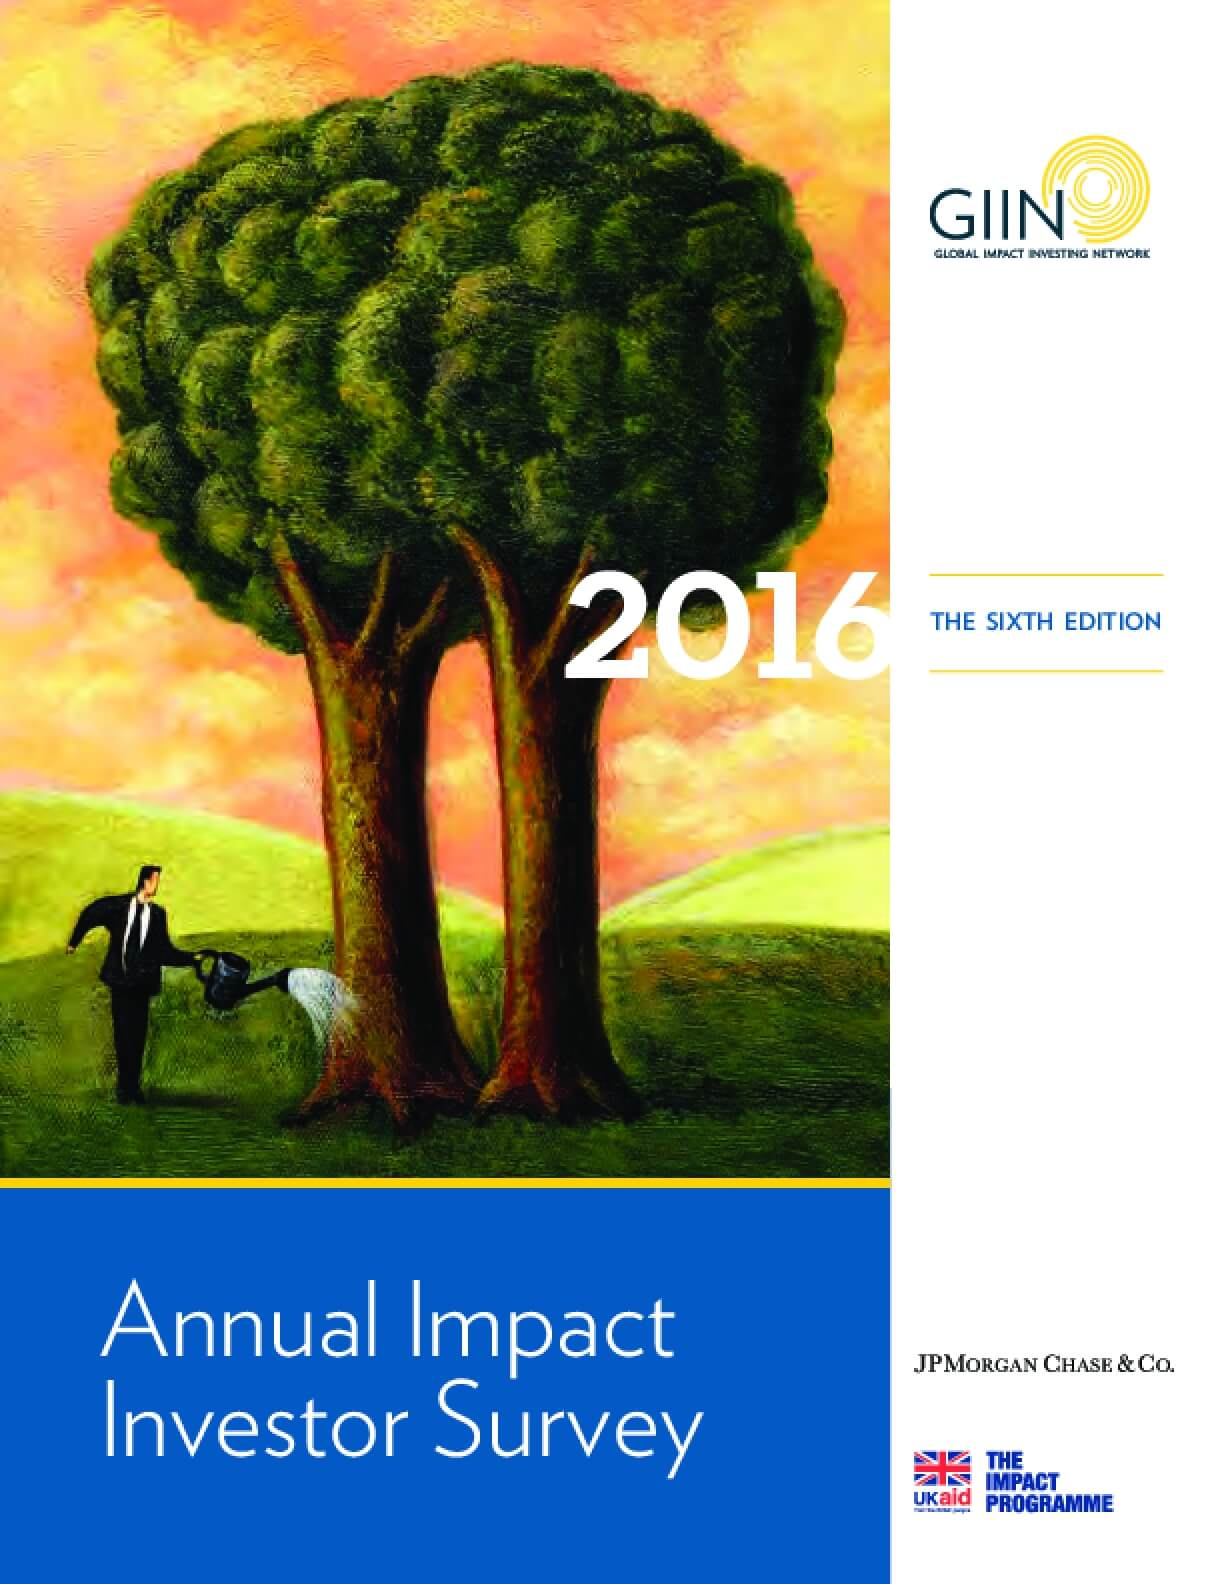 Annual Impact Investor Survey 2016